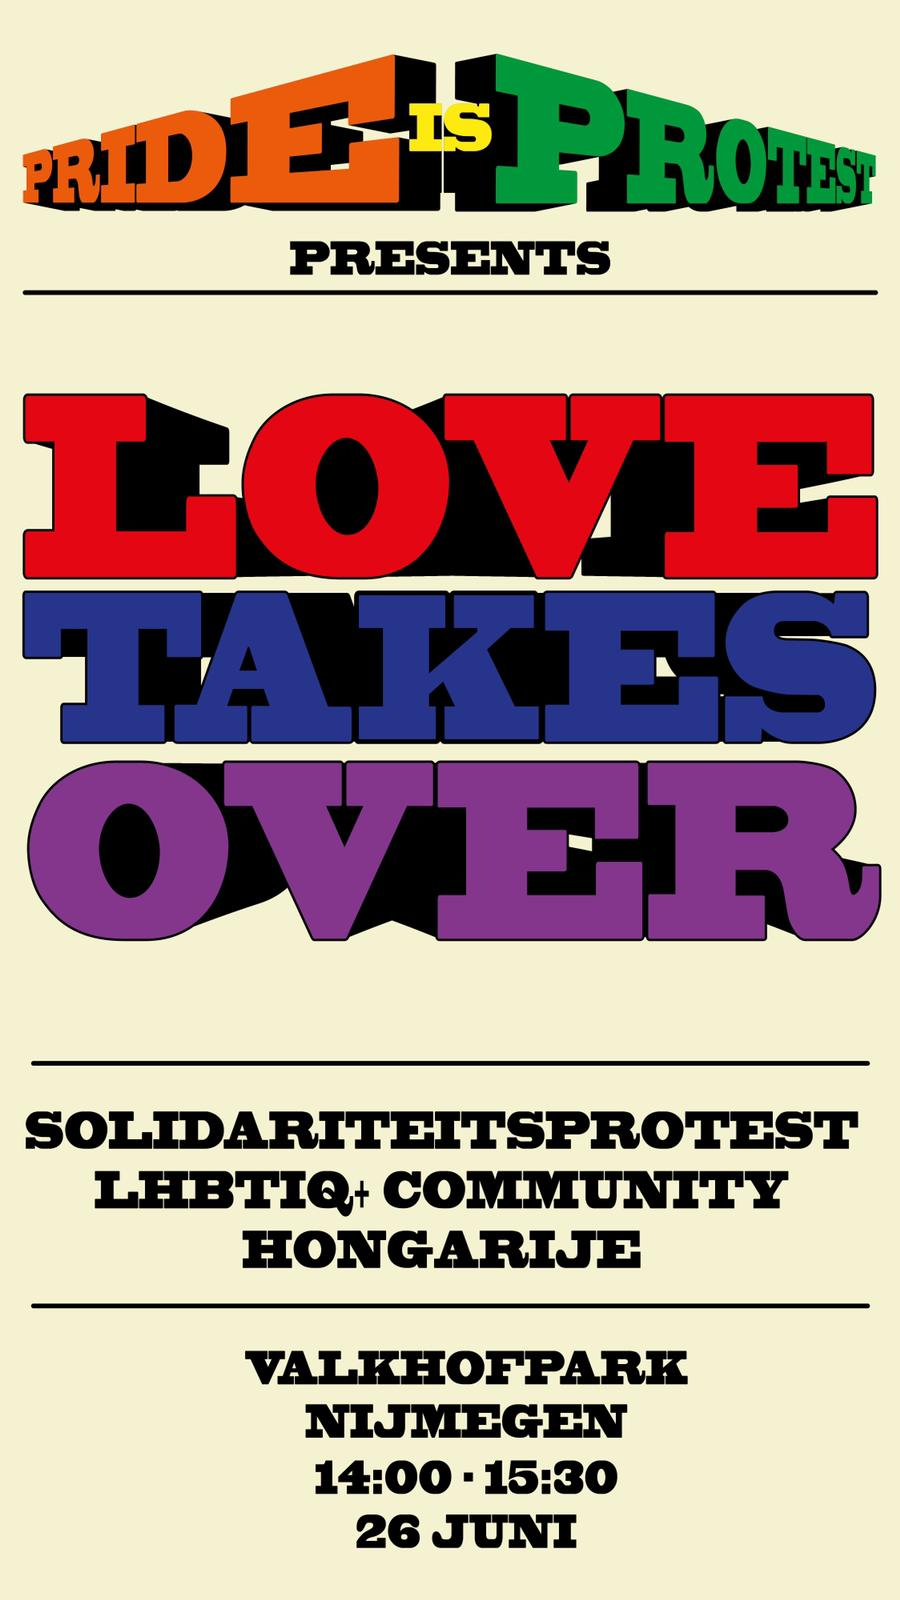 Pride is Protest: Love takes over